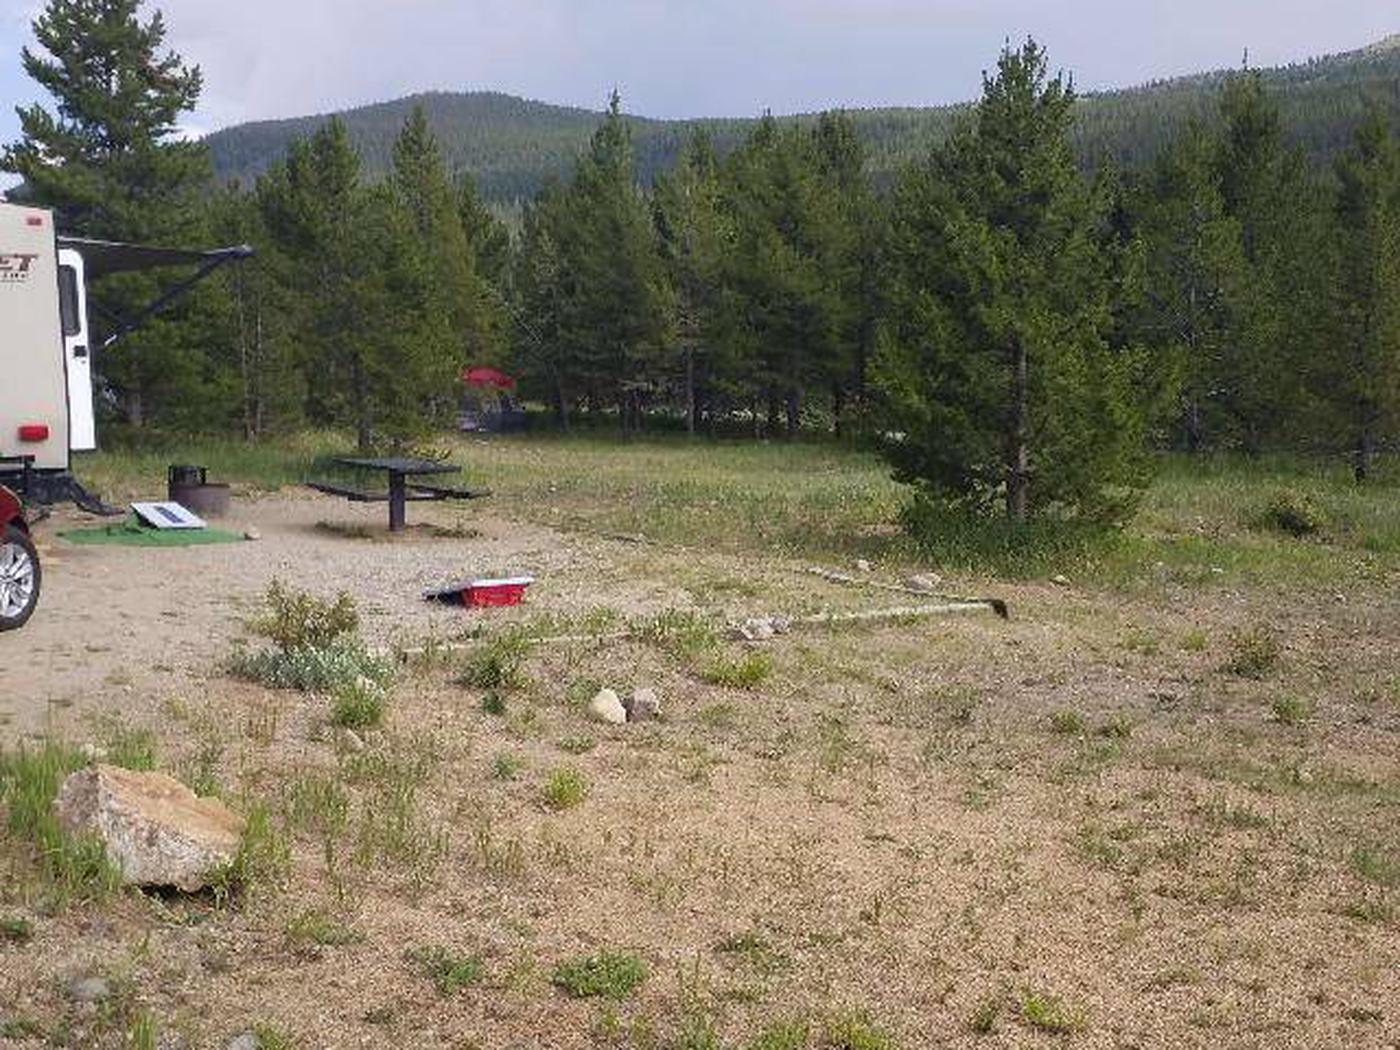 May Queen Campground, site 13